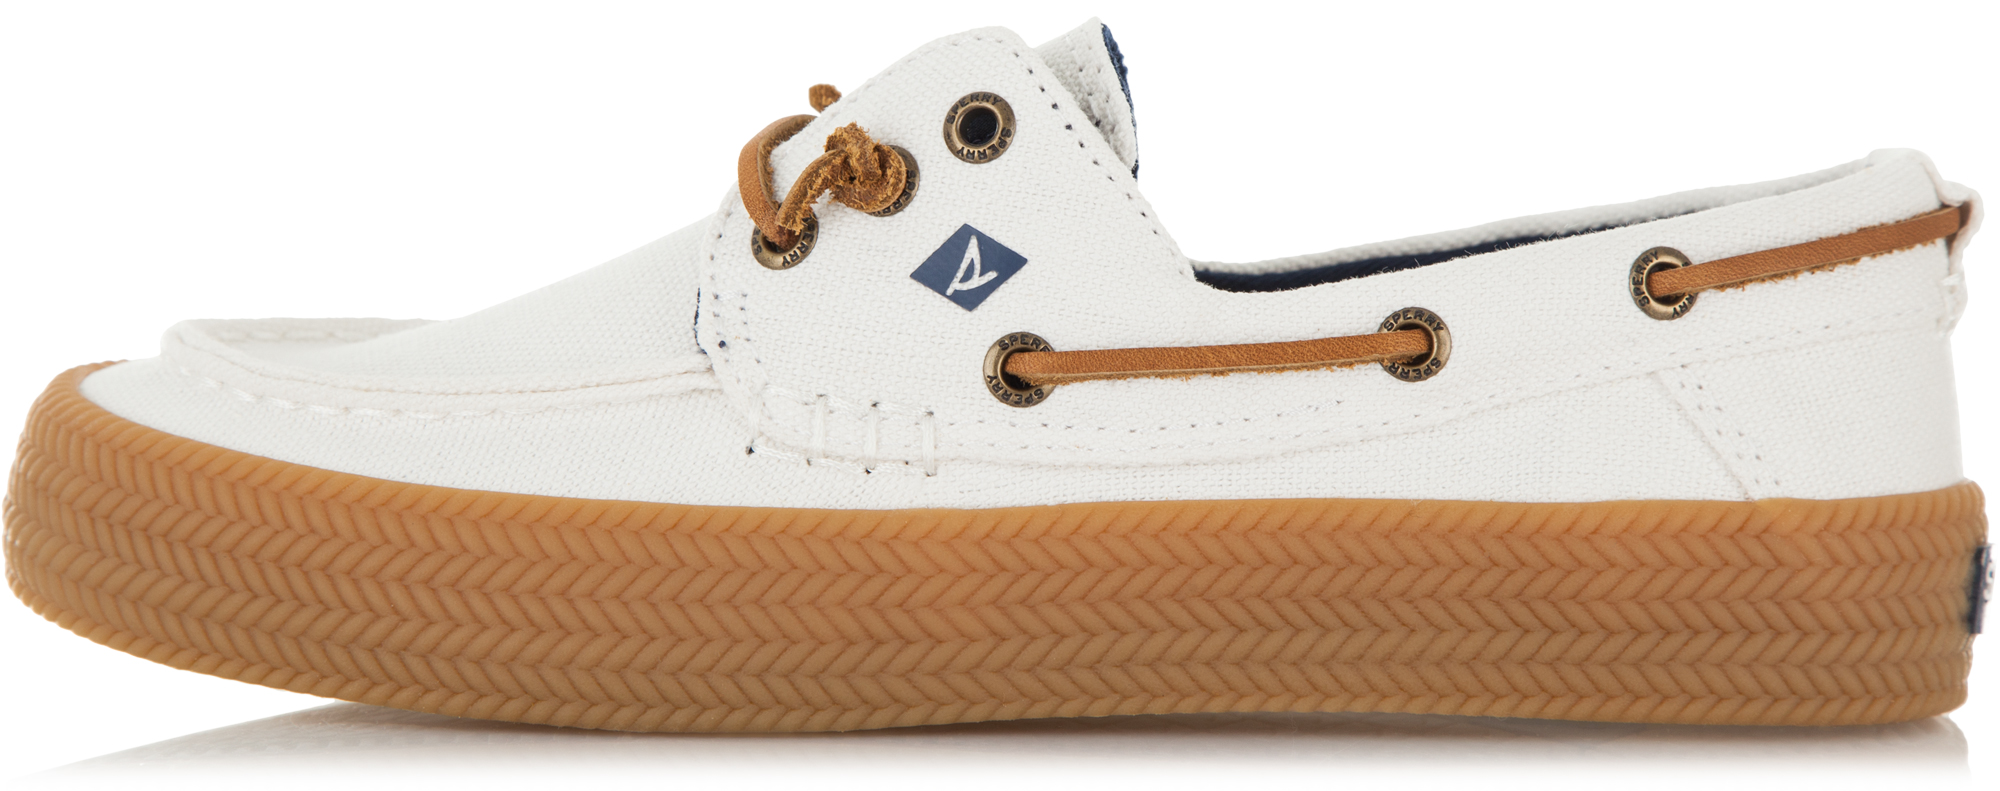 SPERRY TOP-SIDER Полуботинки женские SPERRY TOP-SIDER Crest Resort Rope sperry top sider bahama boat shoe little kid big kid